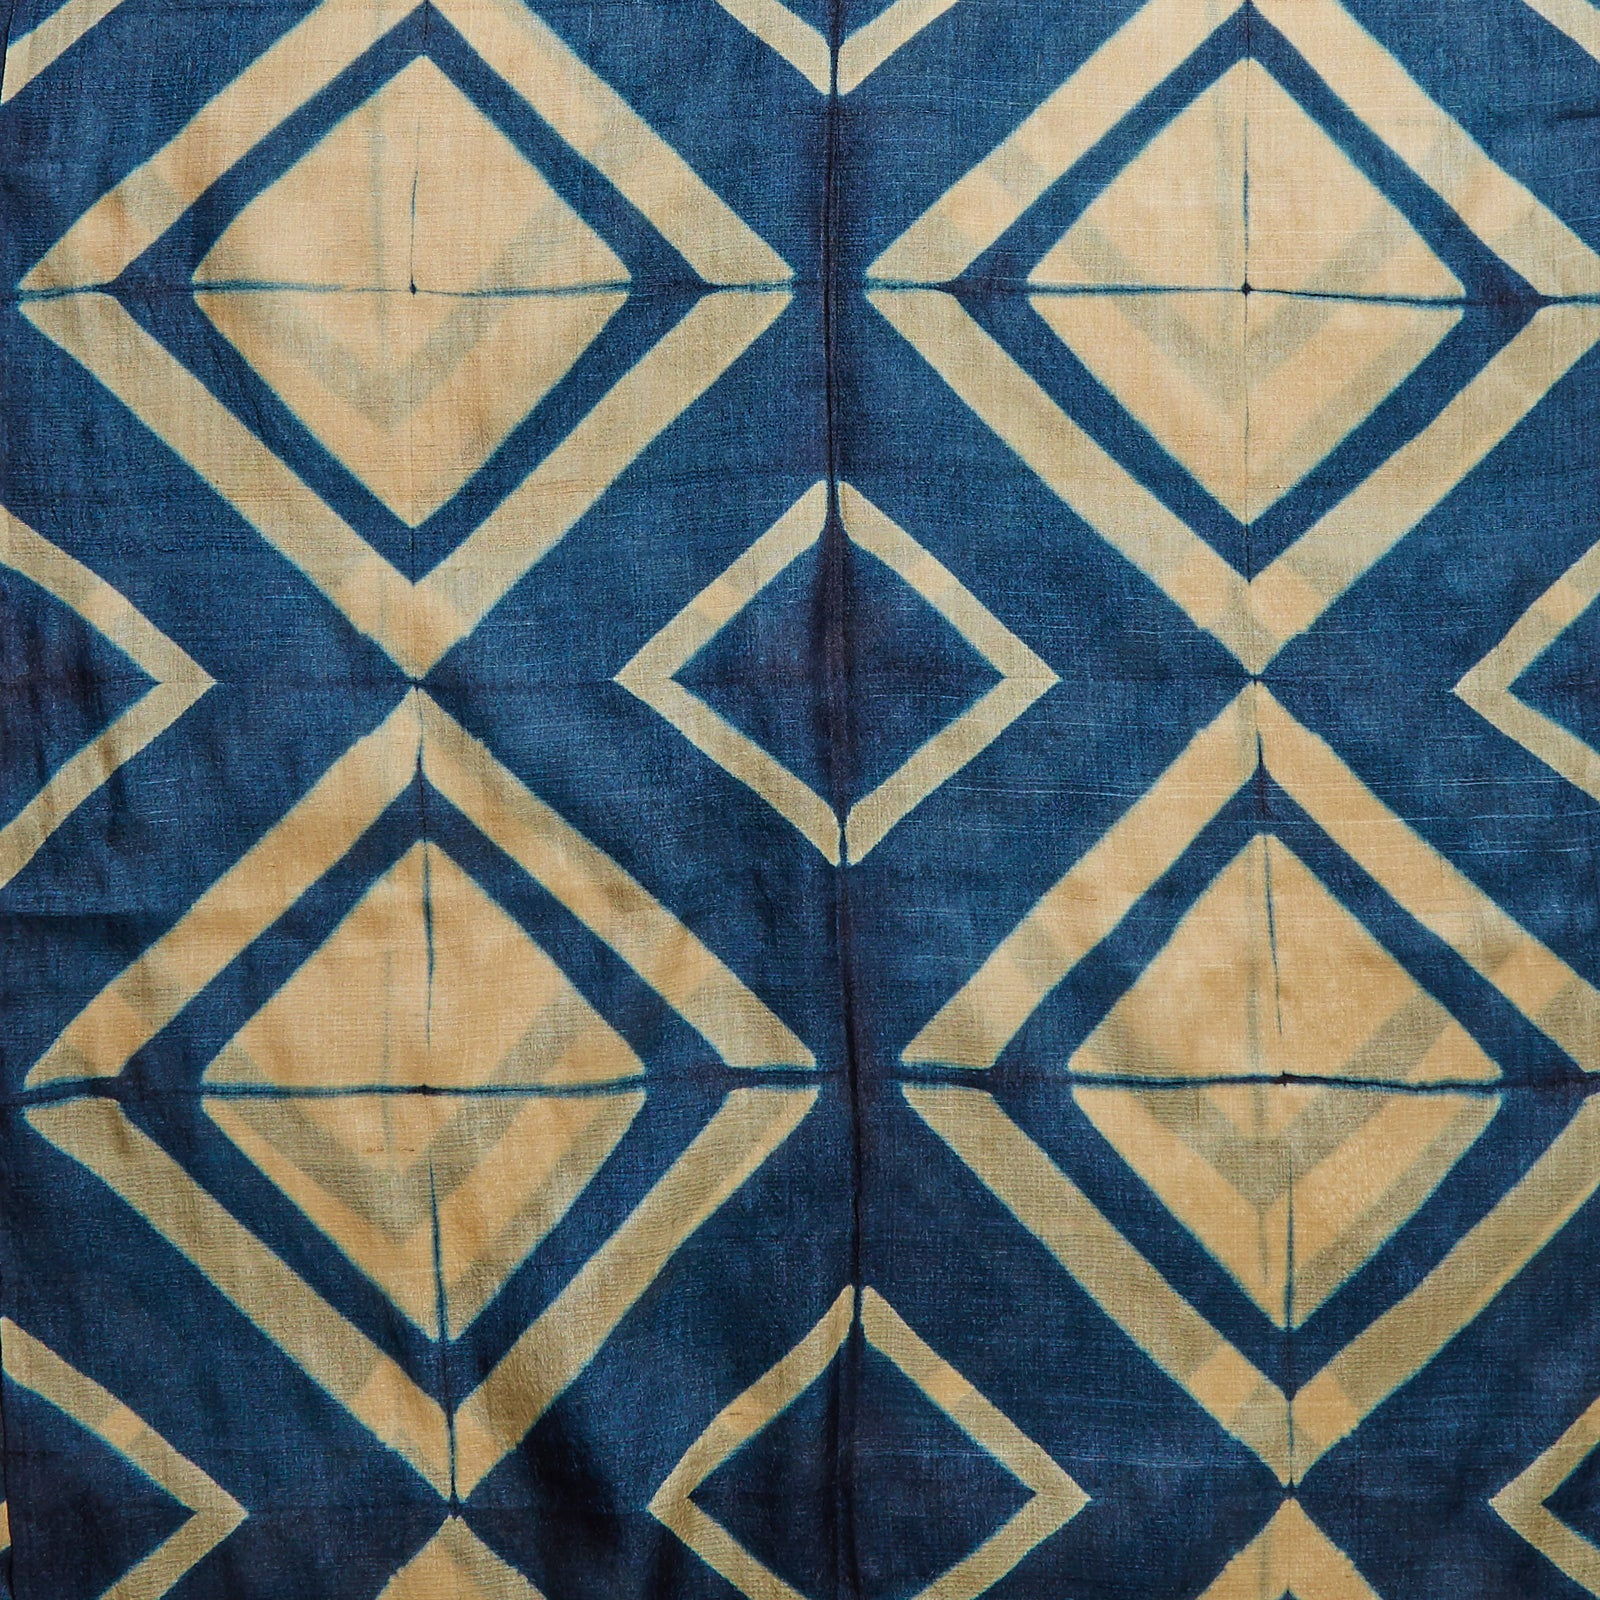 Image showing off the striking blue diamond pattern